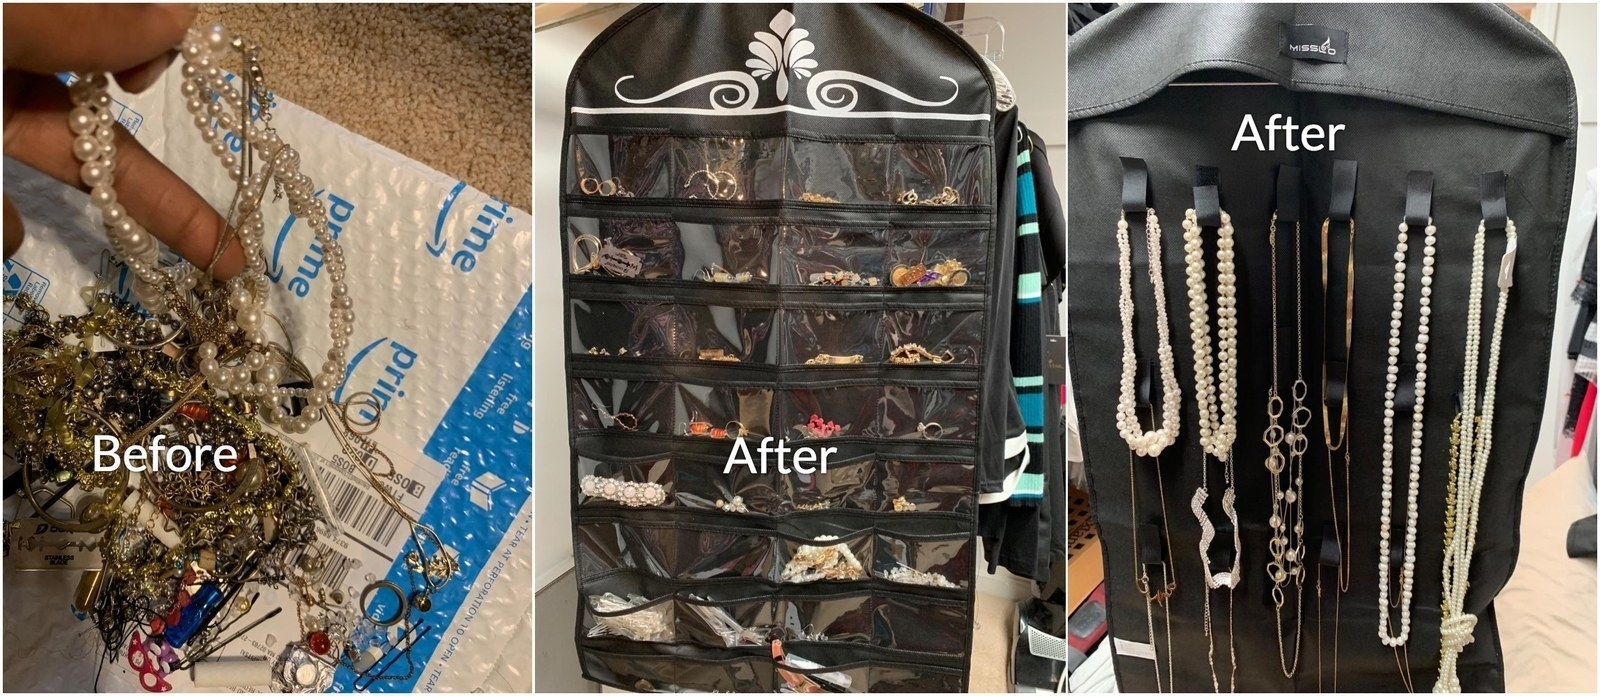 a reviewer's before and after shot of jewelry tangled up and then hanging on the organizer